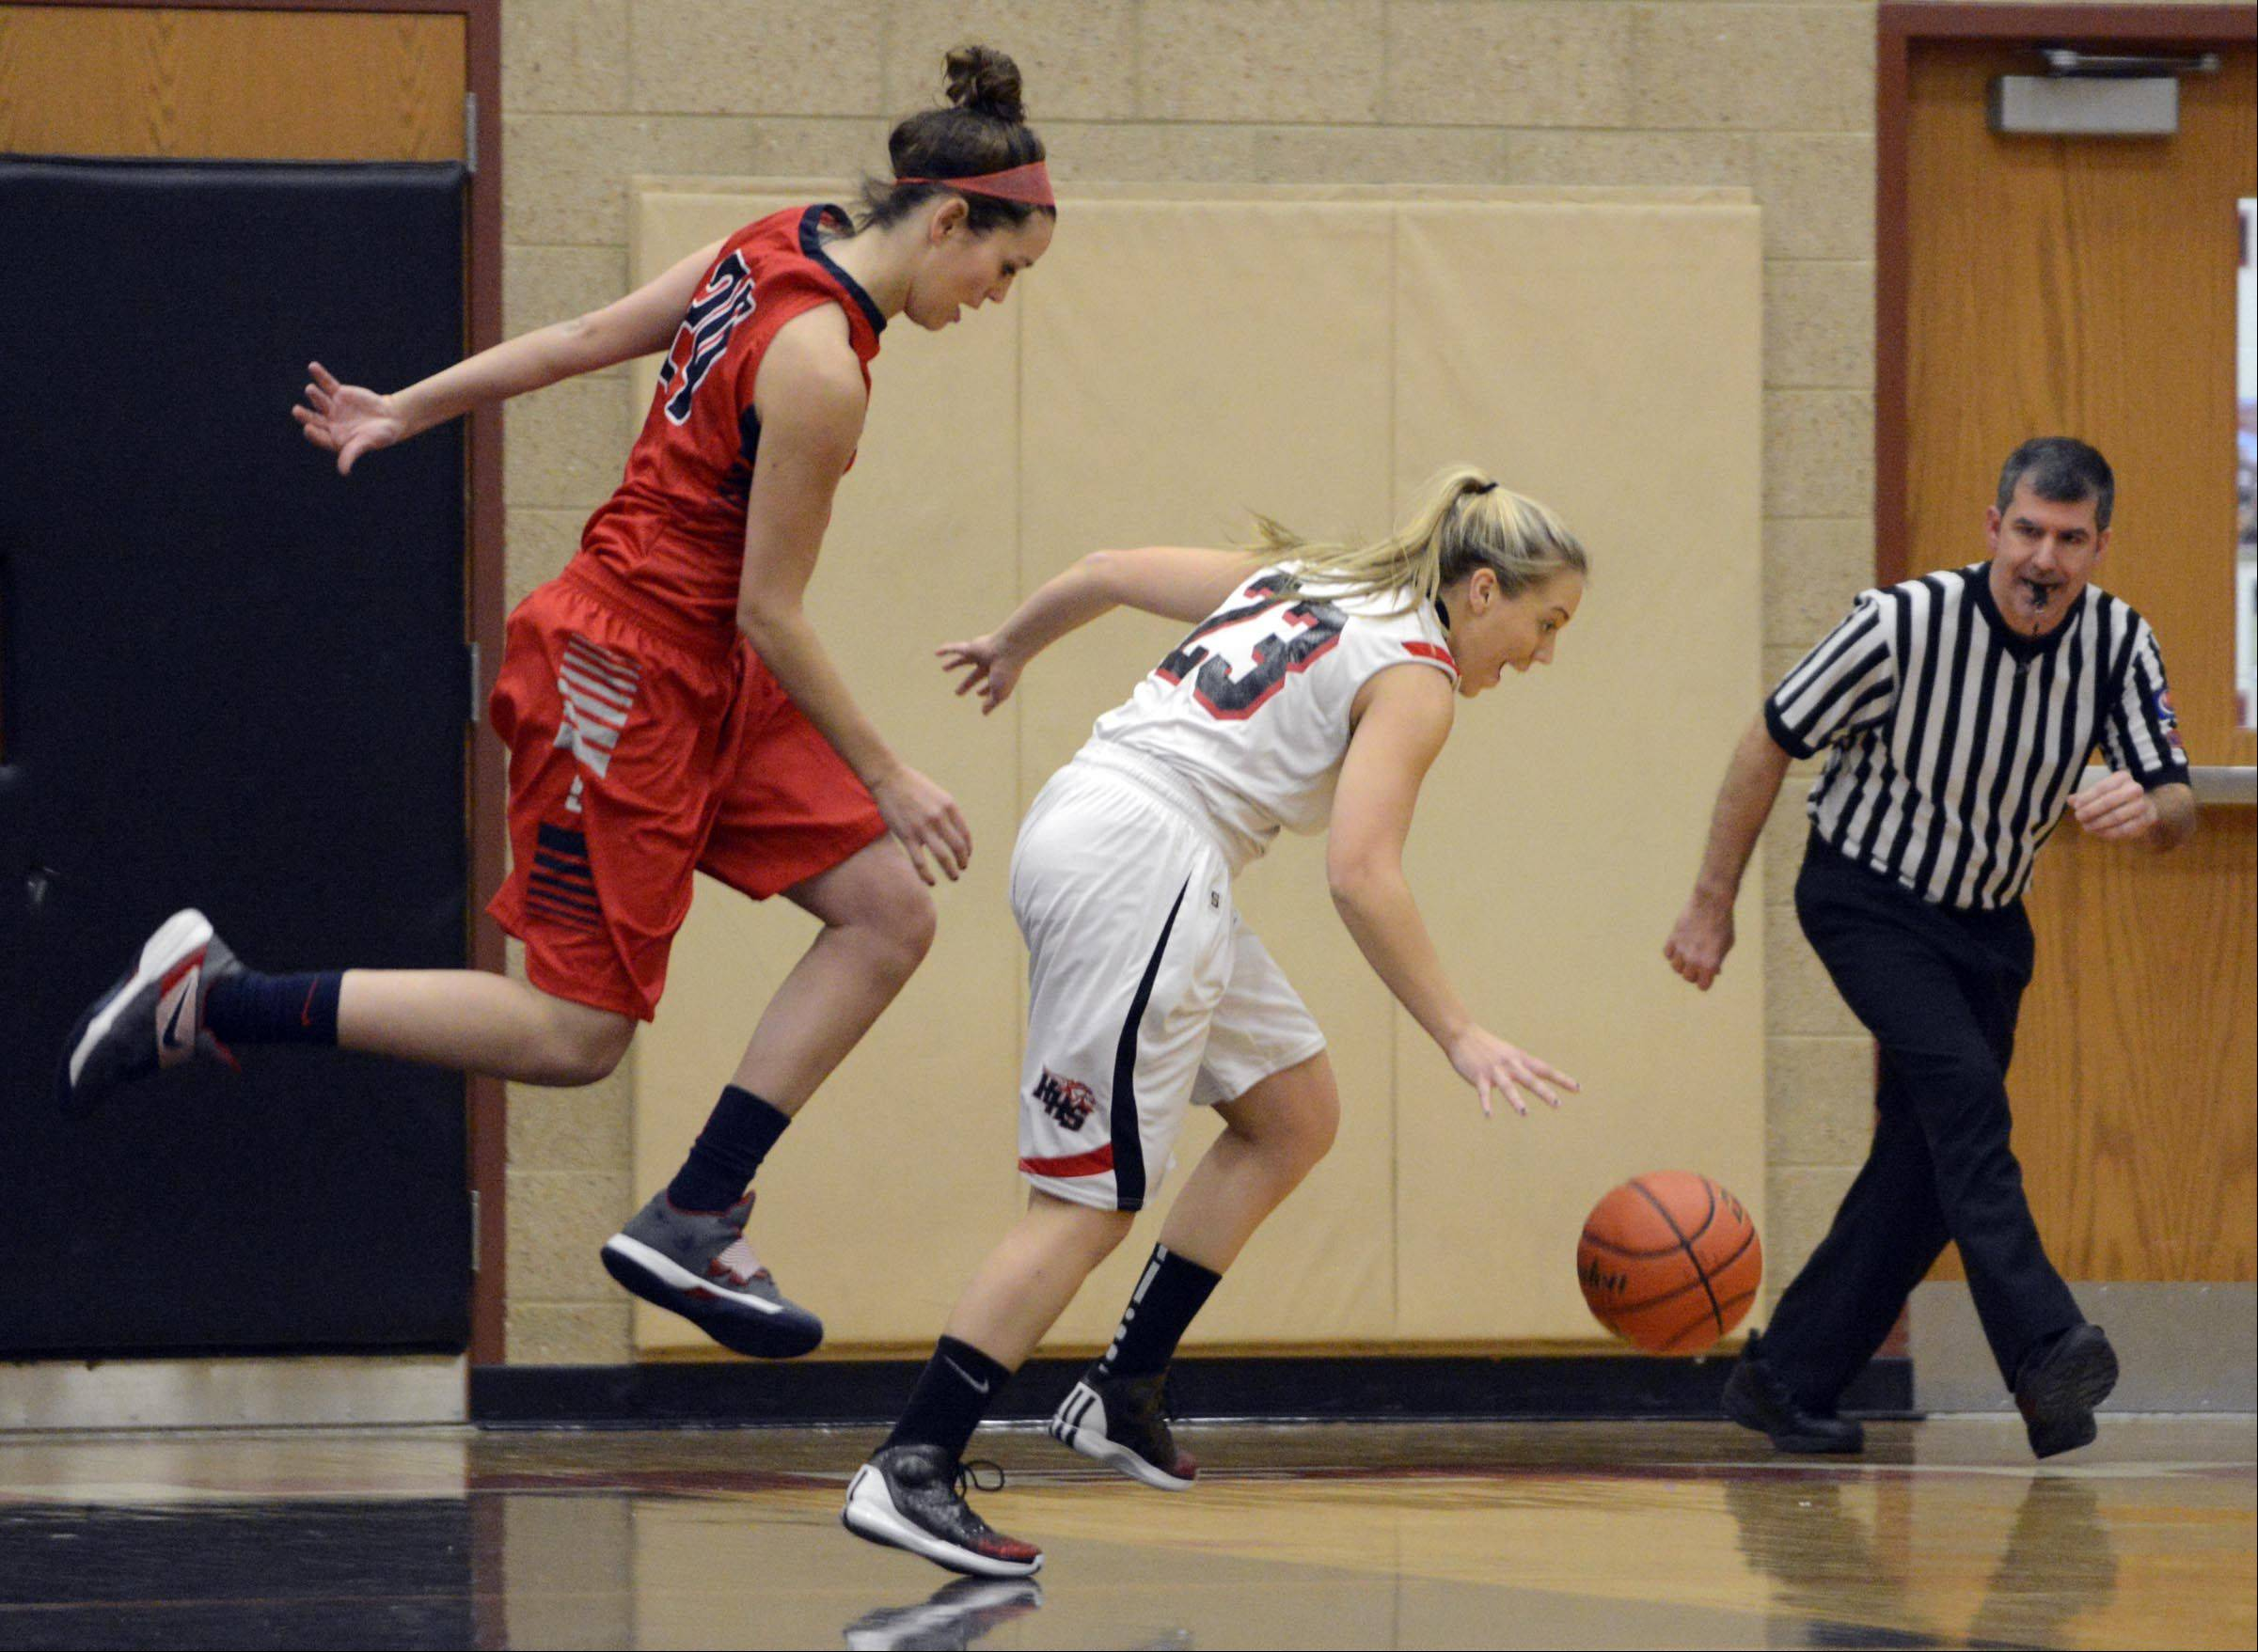 South Elgin's Kennede Miller hops over Huntley's Jessica Brock Wednesday in Huntley.